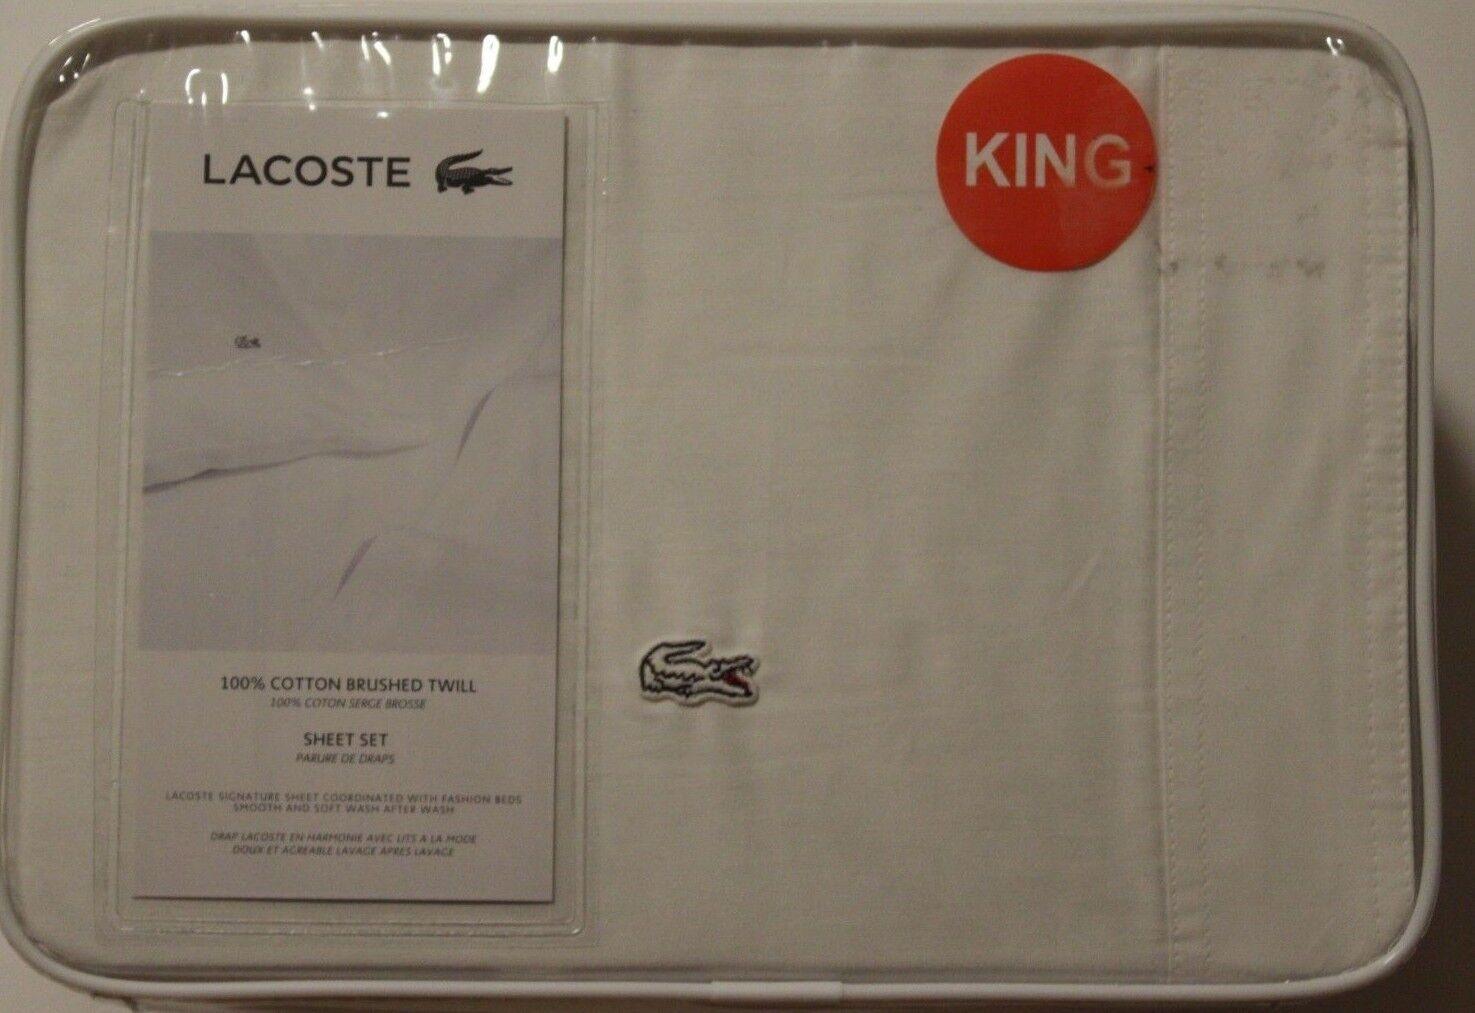 New LACOSTE Queen Sheet Set 4 Pc 100% Brushed Twill Cotton Weiß